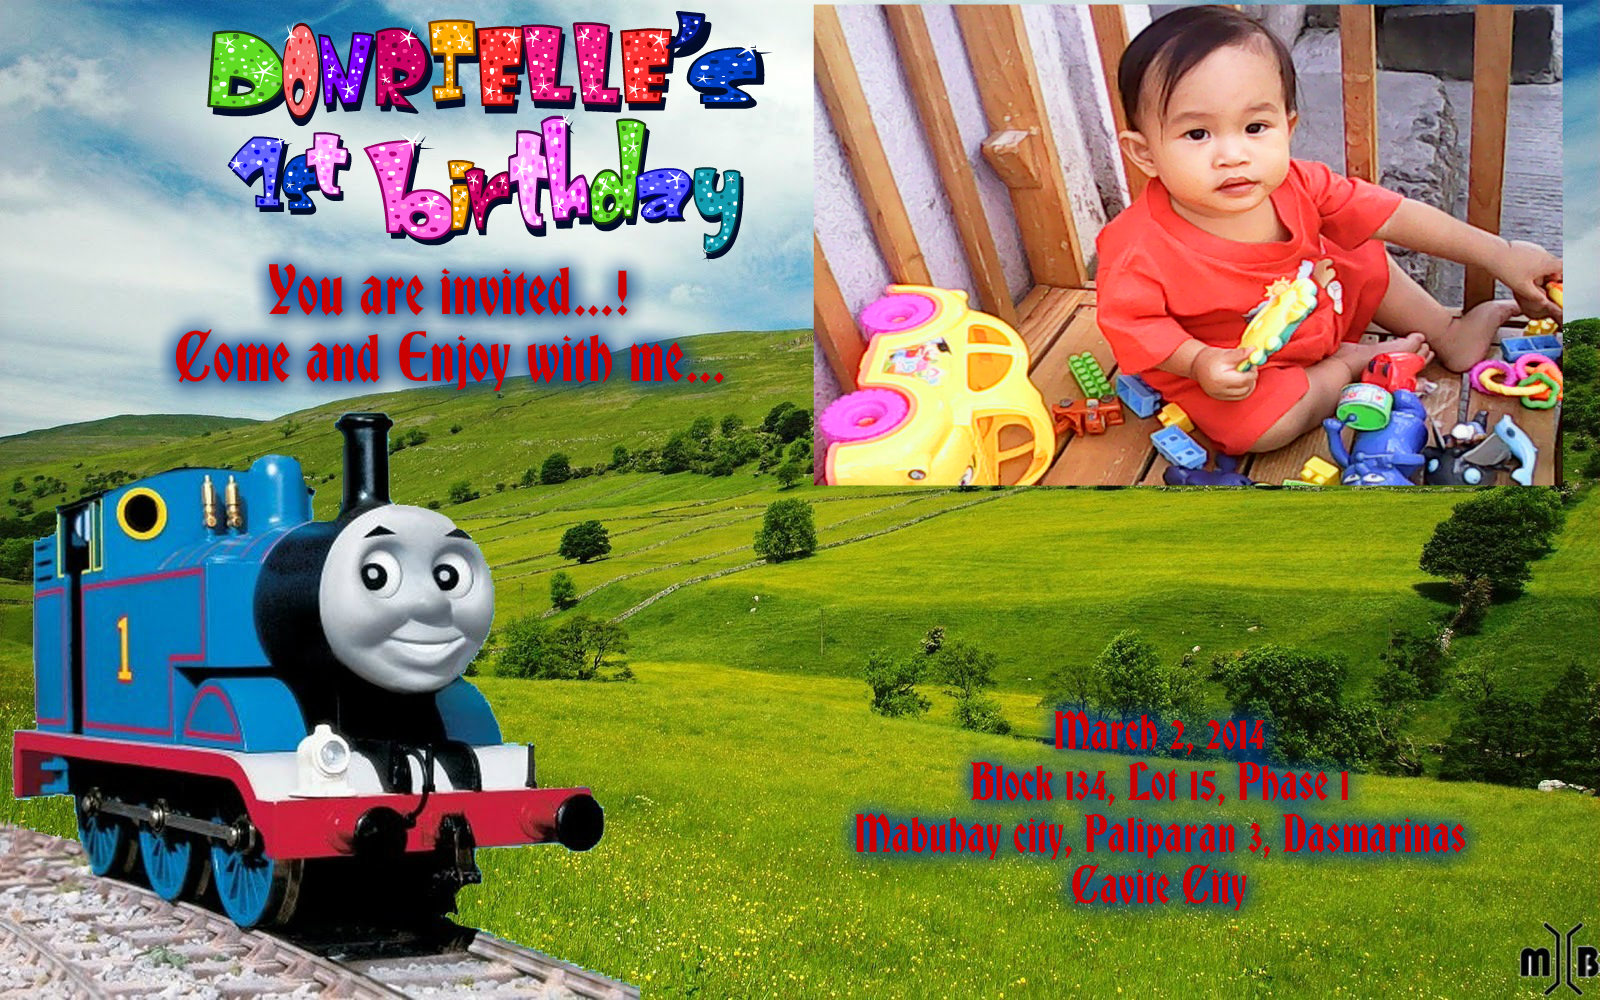 Donels birthday thomas and friends fan art 36630191 - Background thomas and friends ...